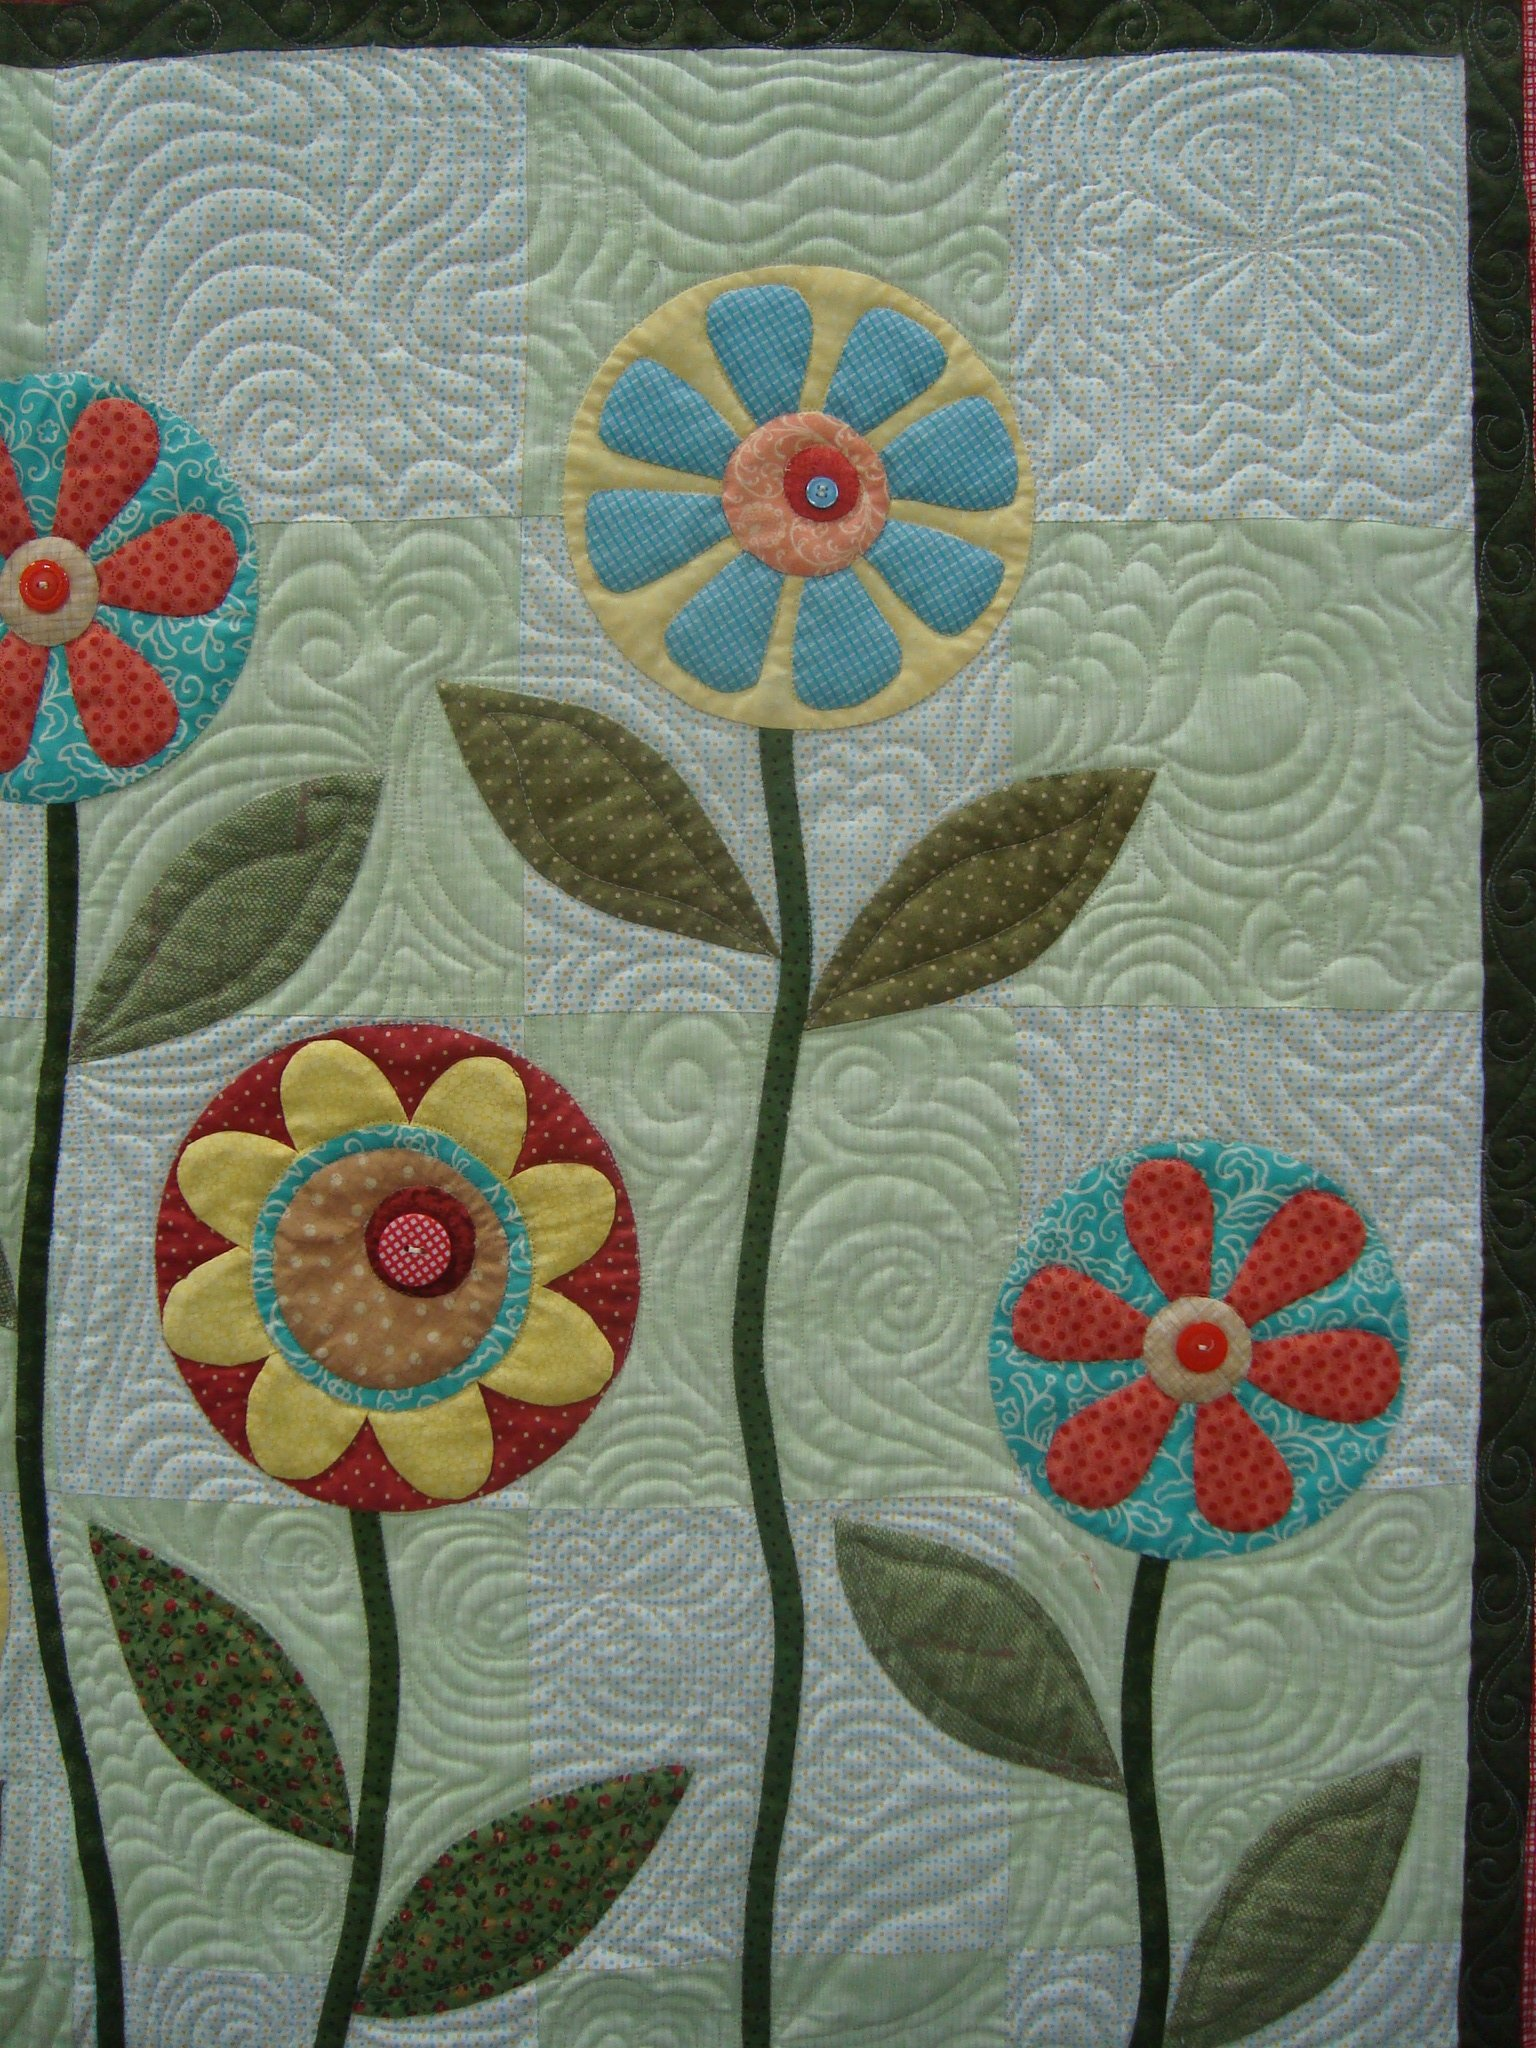 Applique Applique Before Or During Quilting